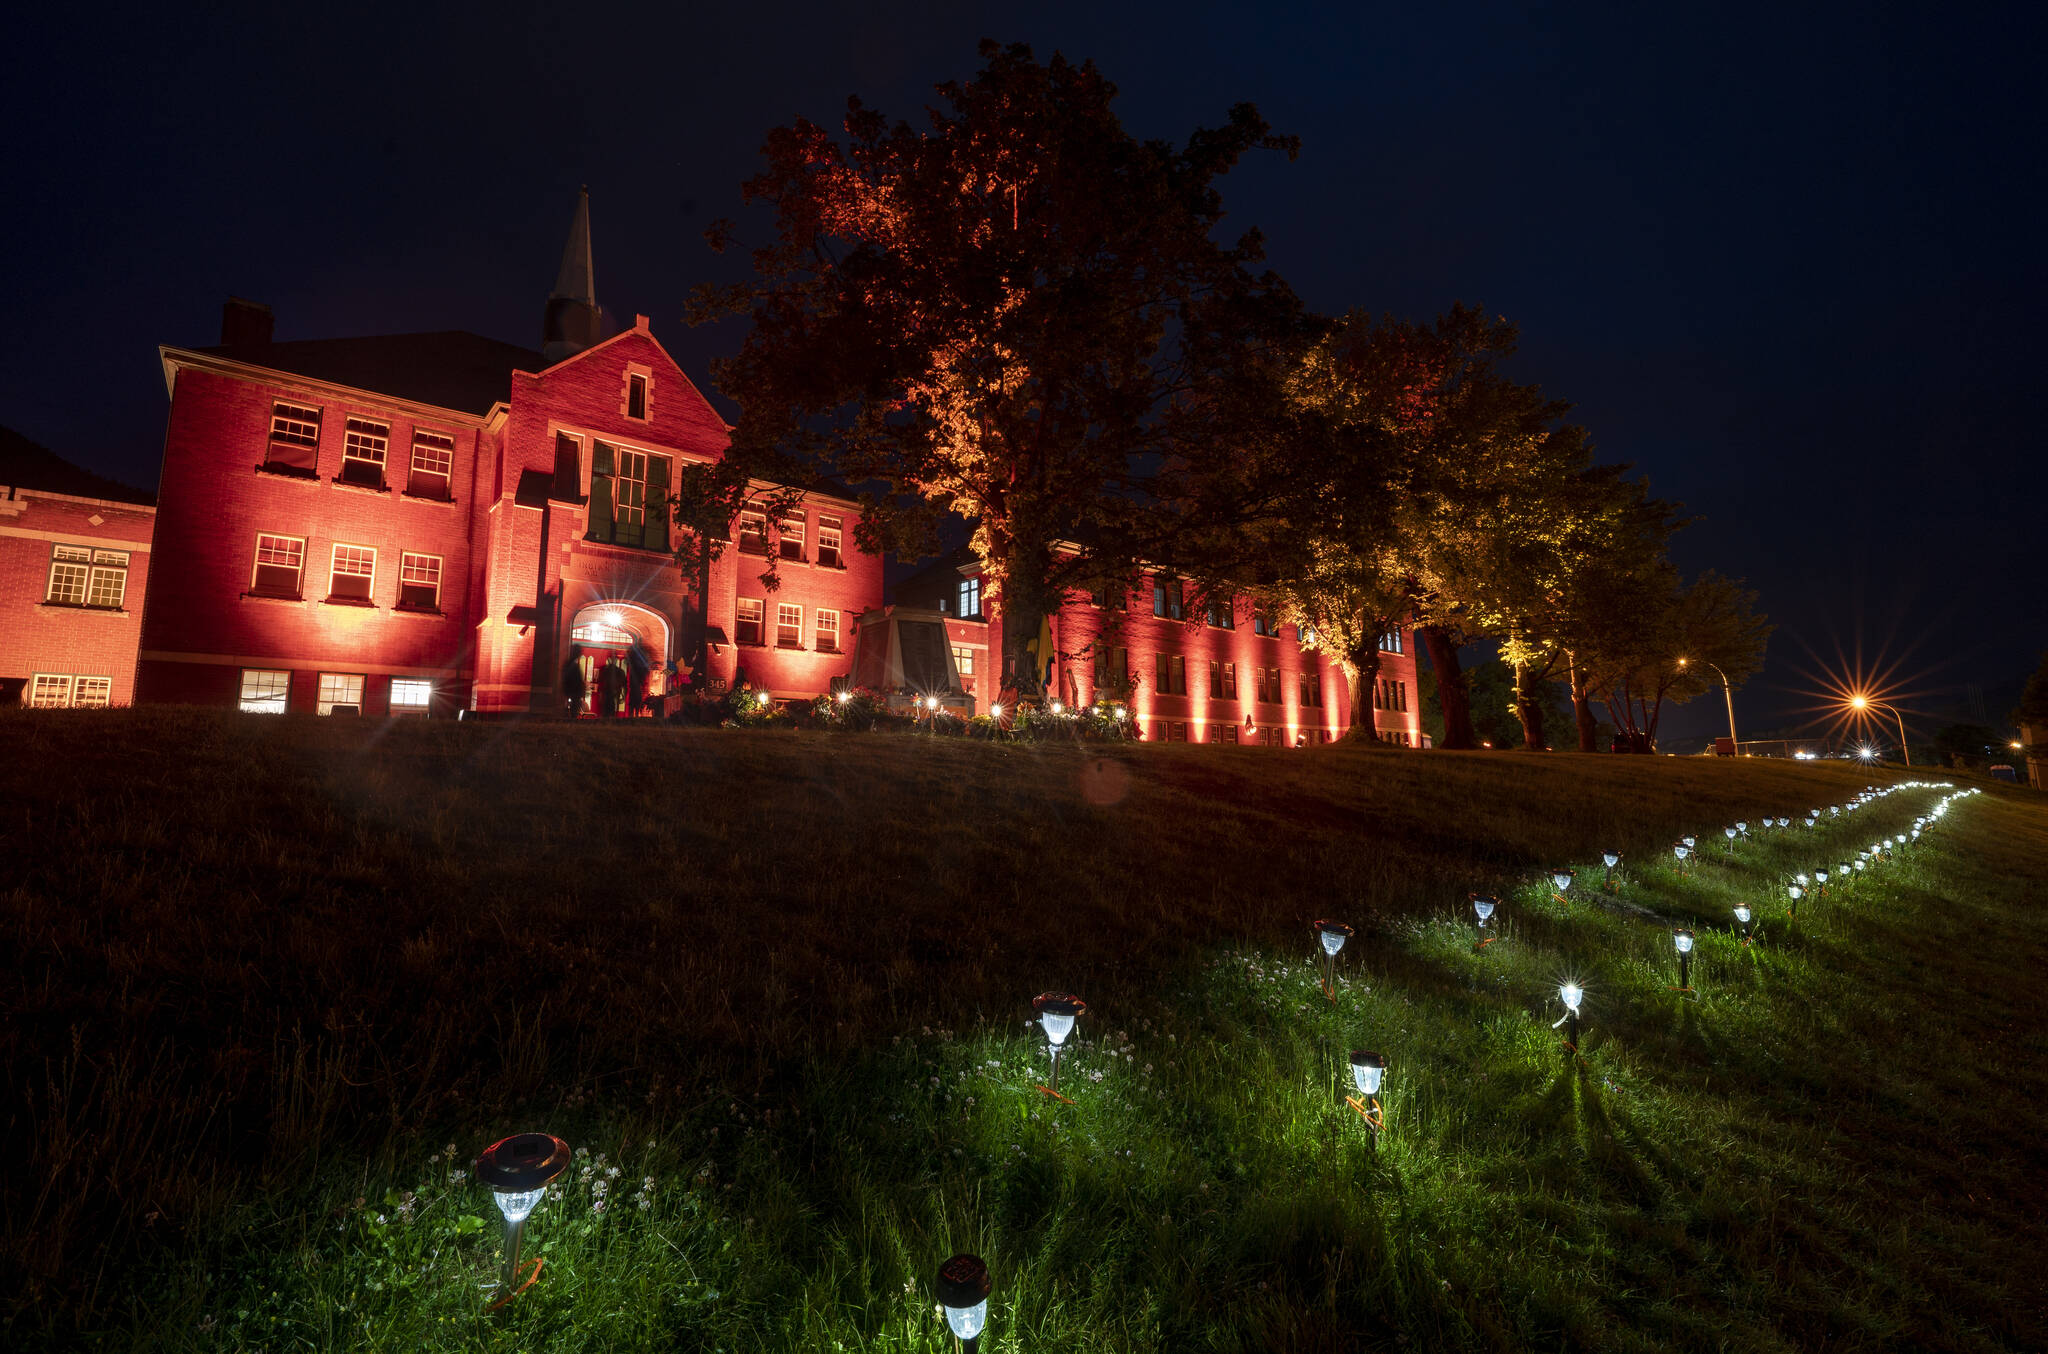 Two hundred and fifteen lights are placed on the lawn outside the Residential School in Kamloops, B.C., Saturday, June, 13, 2021. The remains of 215 children were discovered buried near the former Kamloops Indian Residential School earlier this month. THE CANADIAN PRESS/Jonathan Hayward